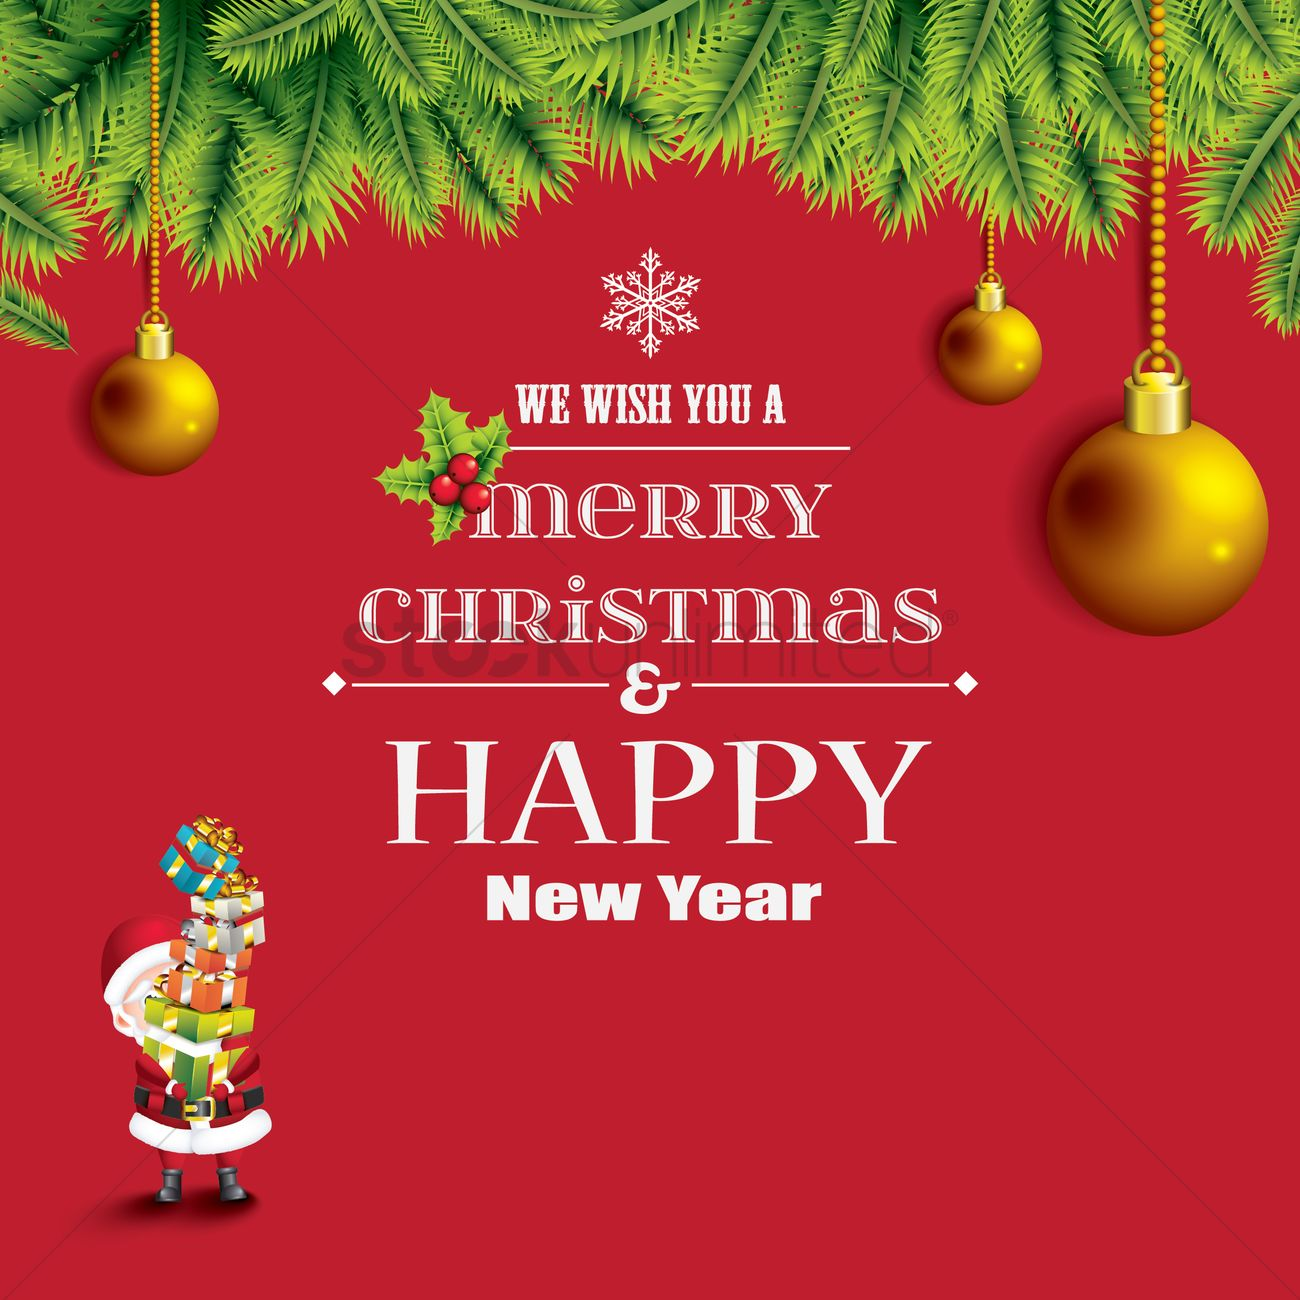 Christmas and new year greetings vector image 1626344 stockunlimited christmas and new year greetings vector graphic kristyandbryce Images